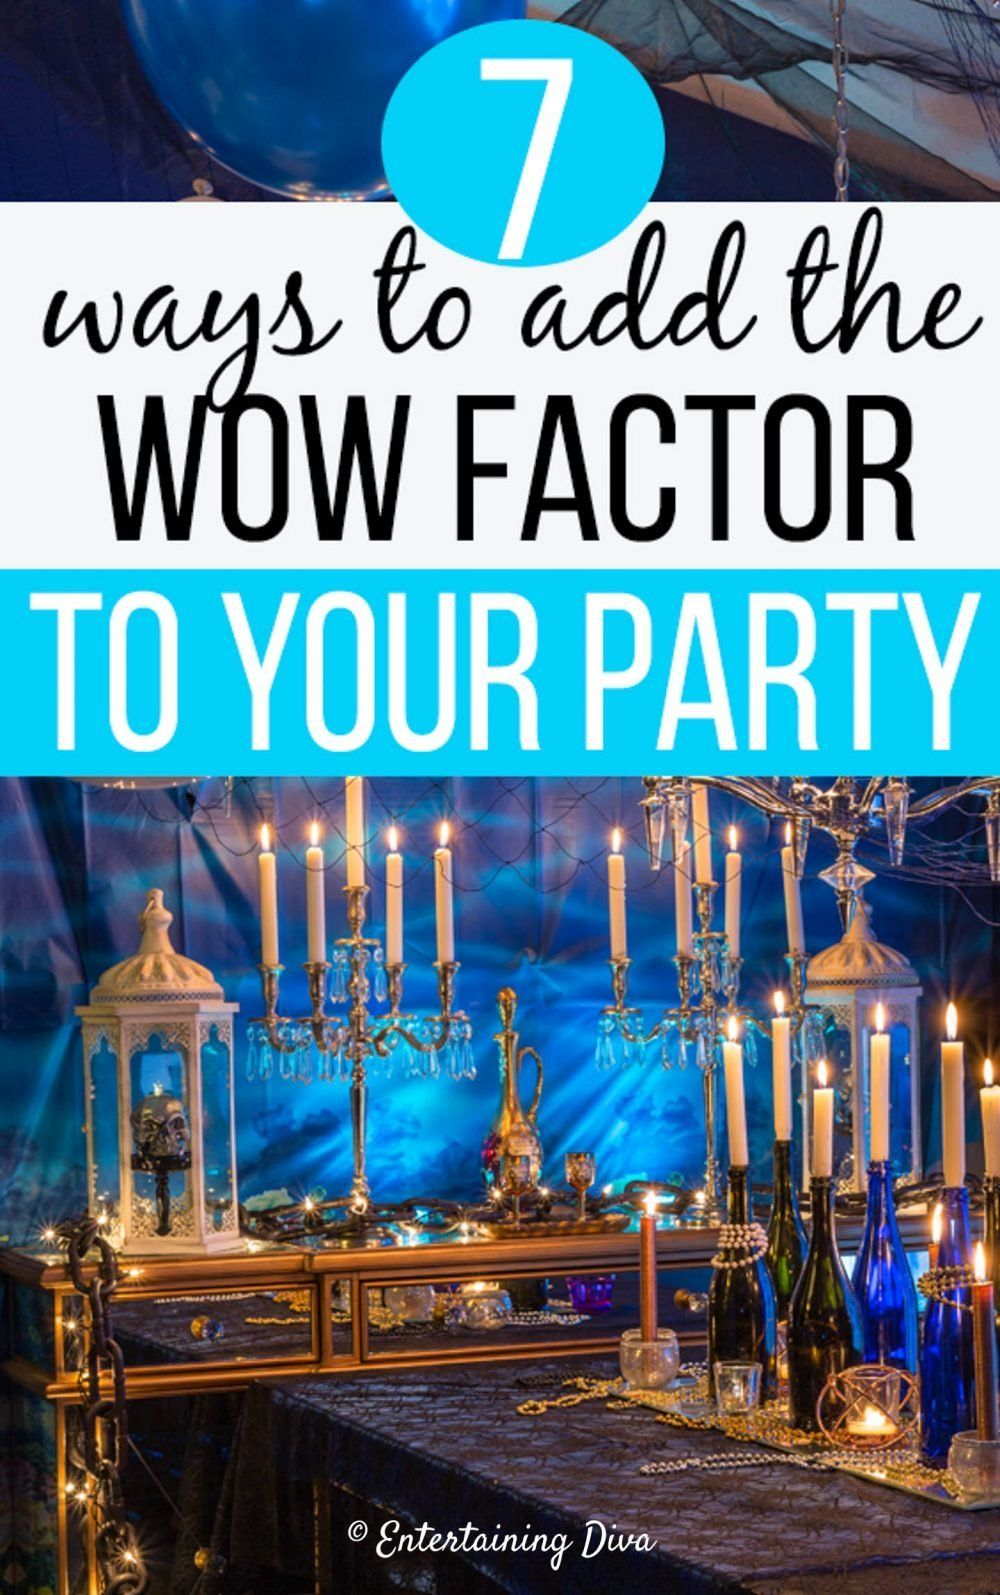 7 Ways To Add The Wow Factor To Your Party Decor in 2020